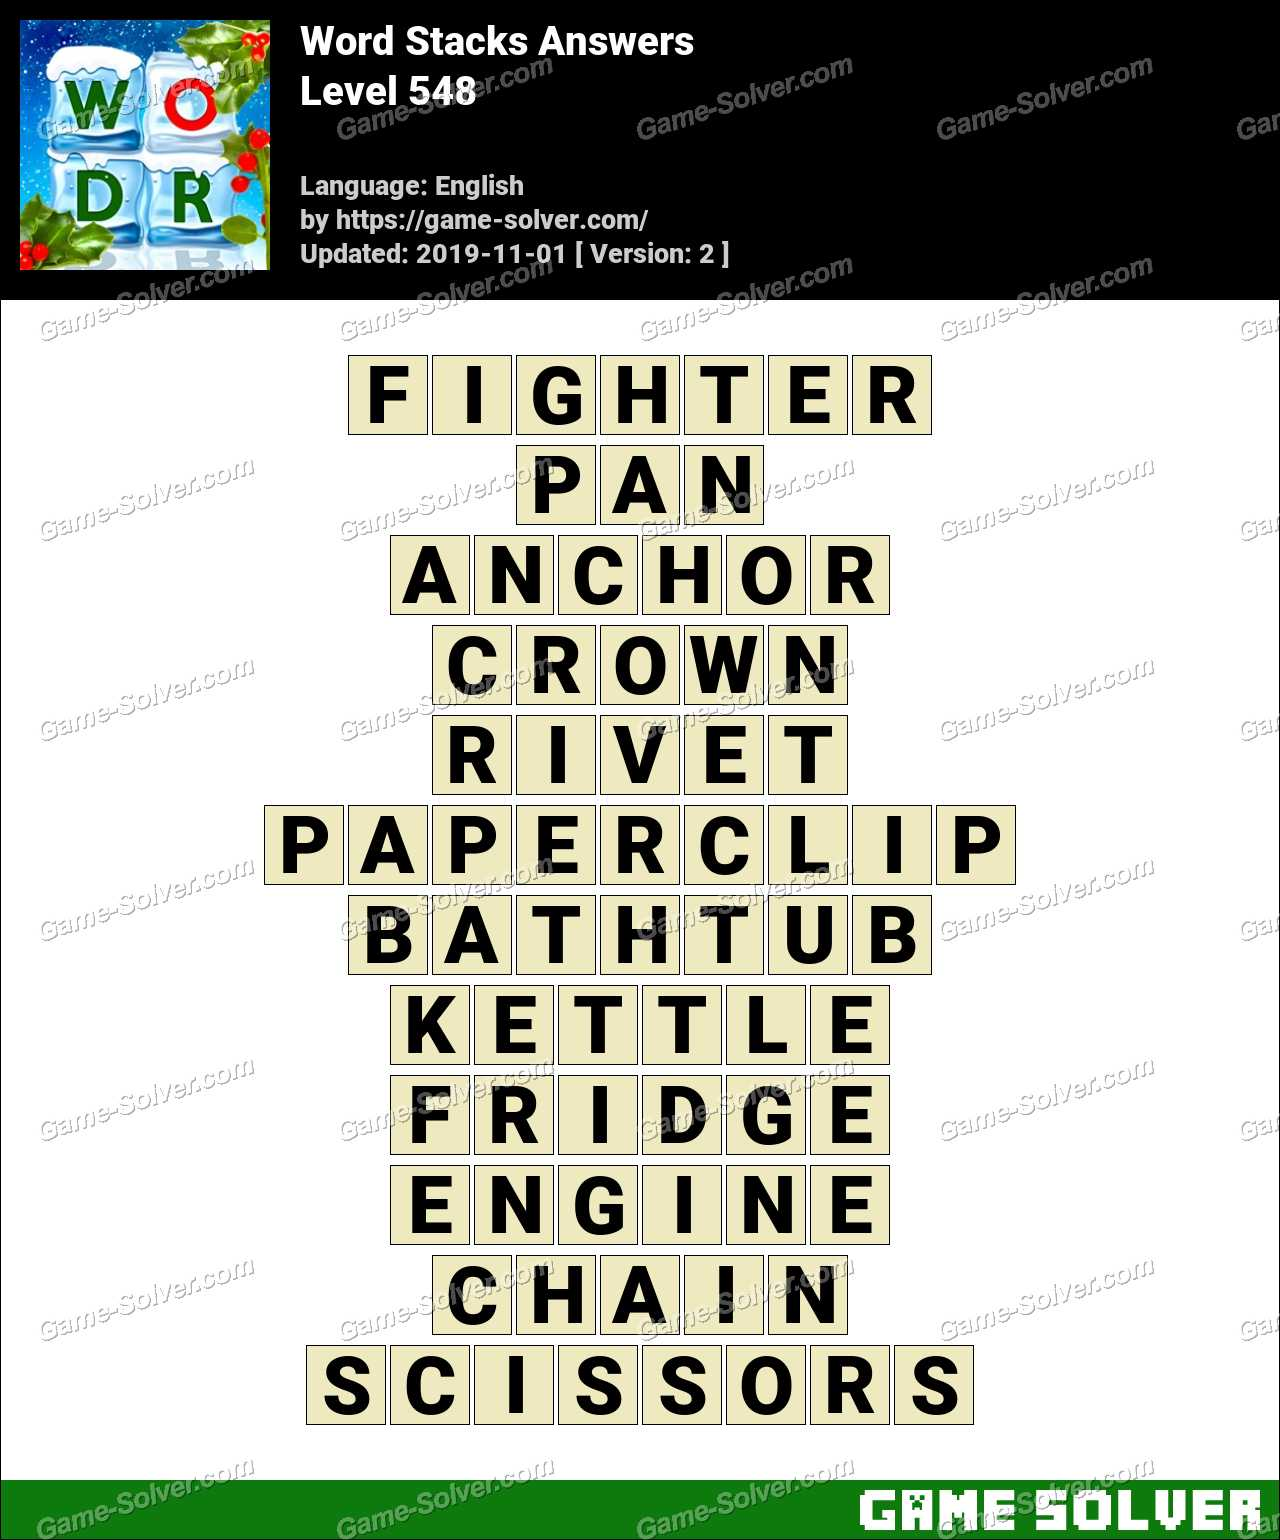 Word Stacks Level 548 Answers